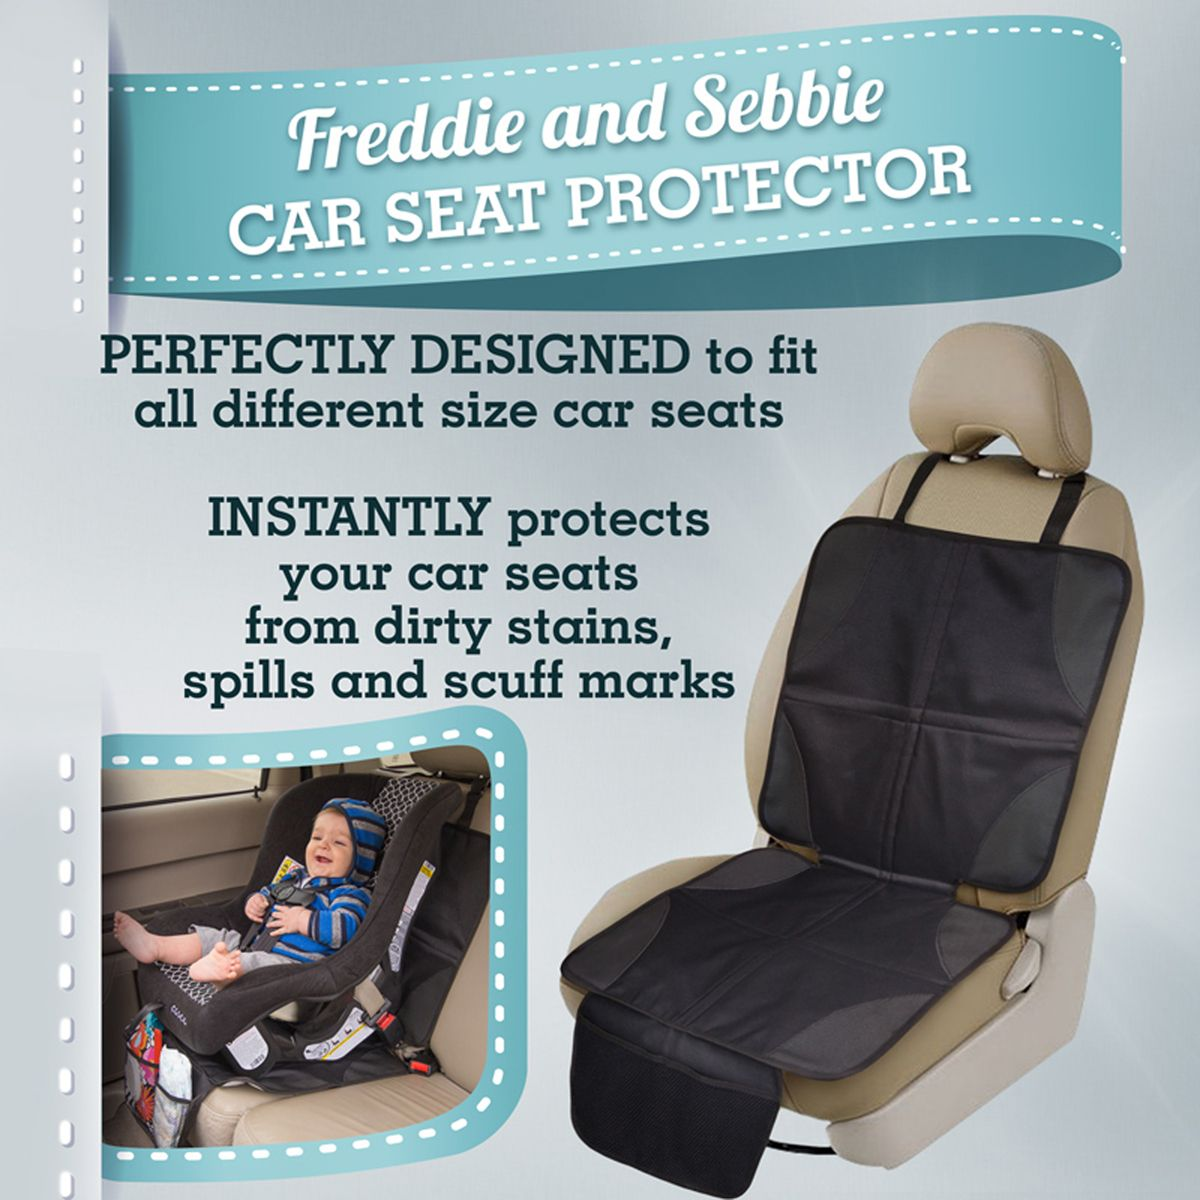 Freddie and sebbie car seat protector non toxic child or